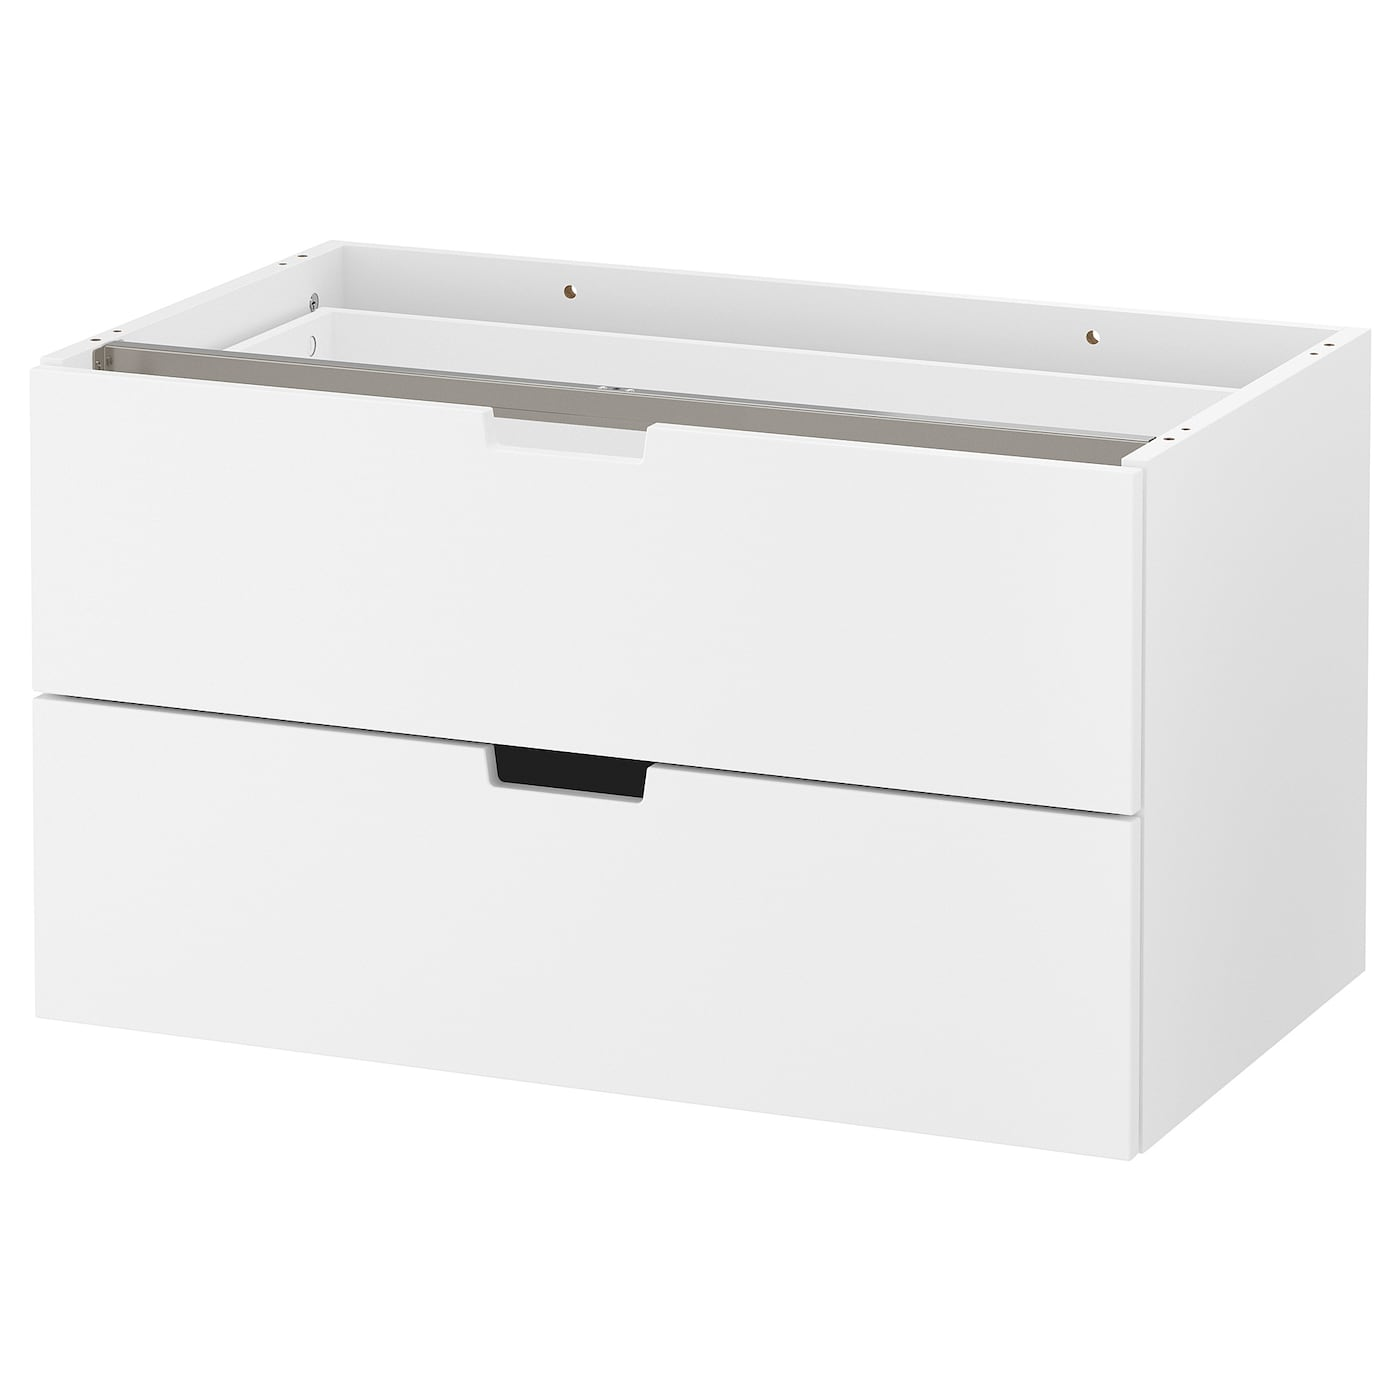 aluminum llc stak drawers drawer unit storage cabinets ez modular